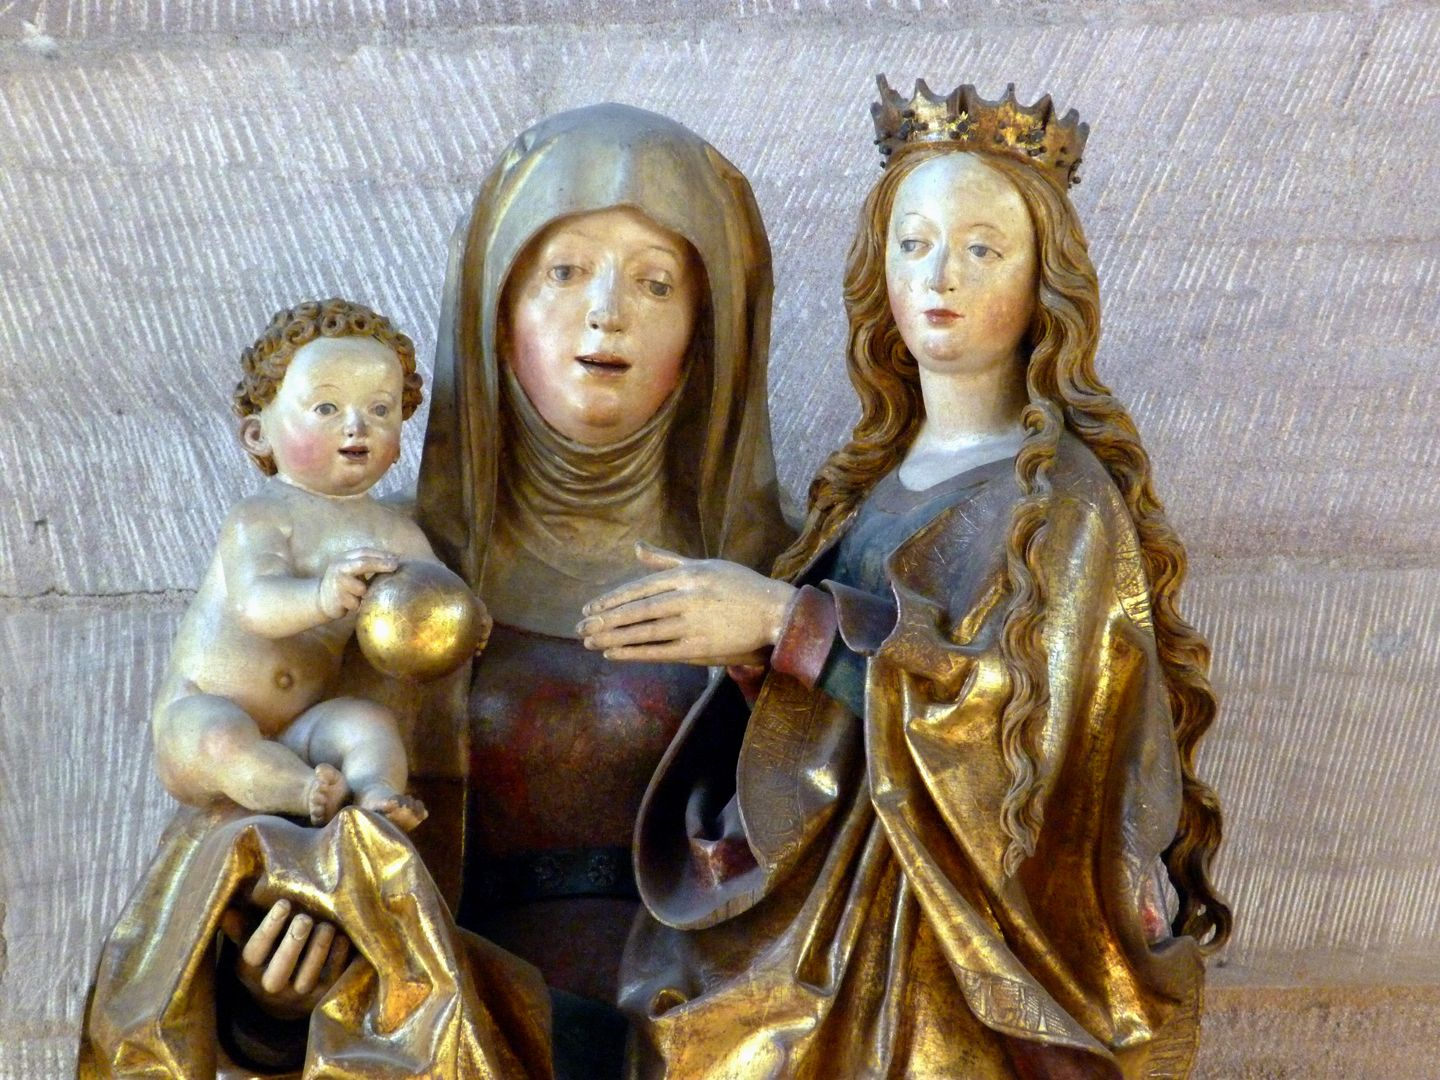 St. Anne with the Virgin and Child obere Hälfte der Figurengruppe